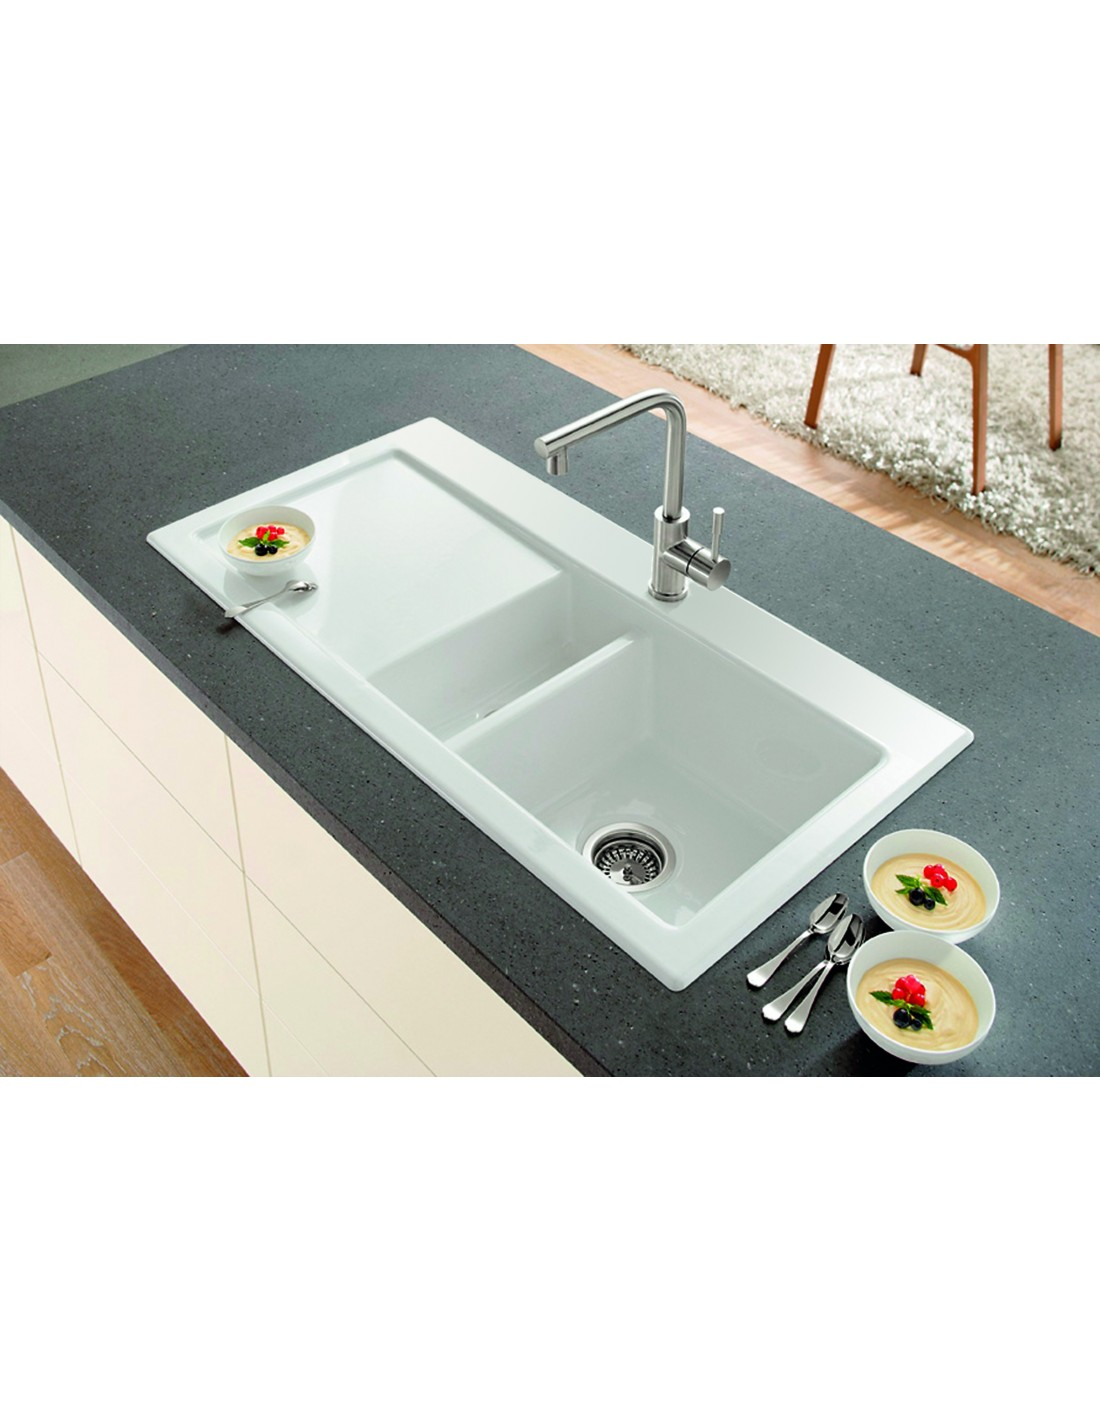 ceramic kitchen sink with drainer villeroy amp boch subway 60xr only 163 364 ceramic kitchen sink 8090